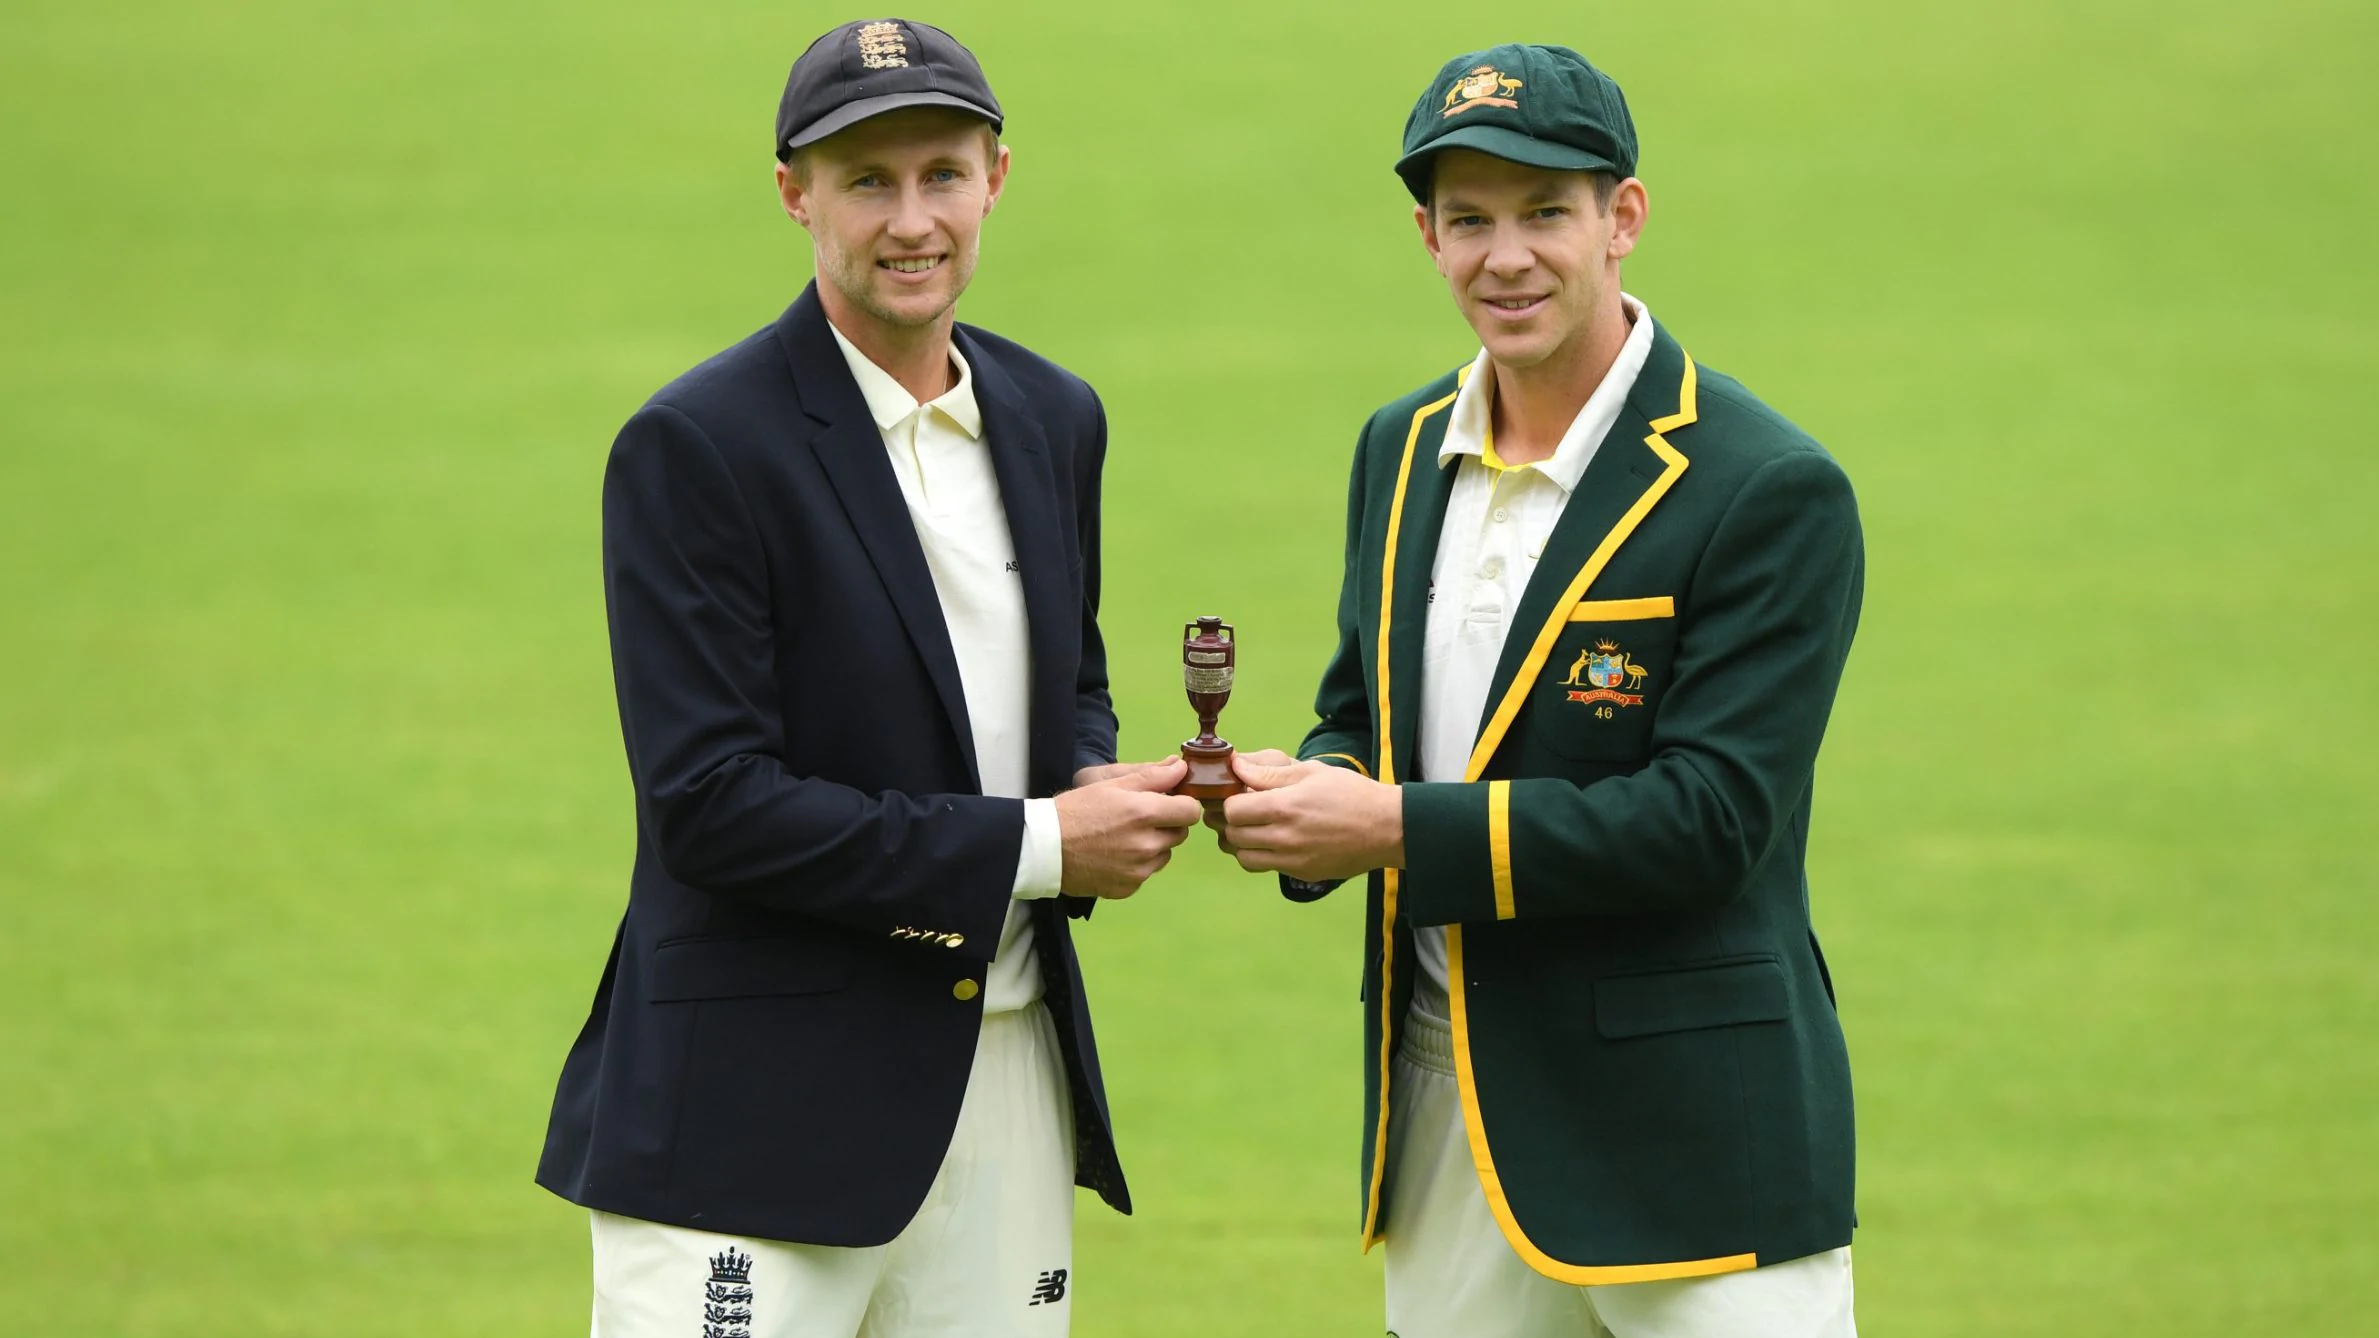 England vs. Australia Ashes 2019 Live Scores Watch Online